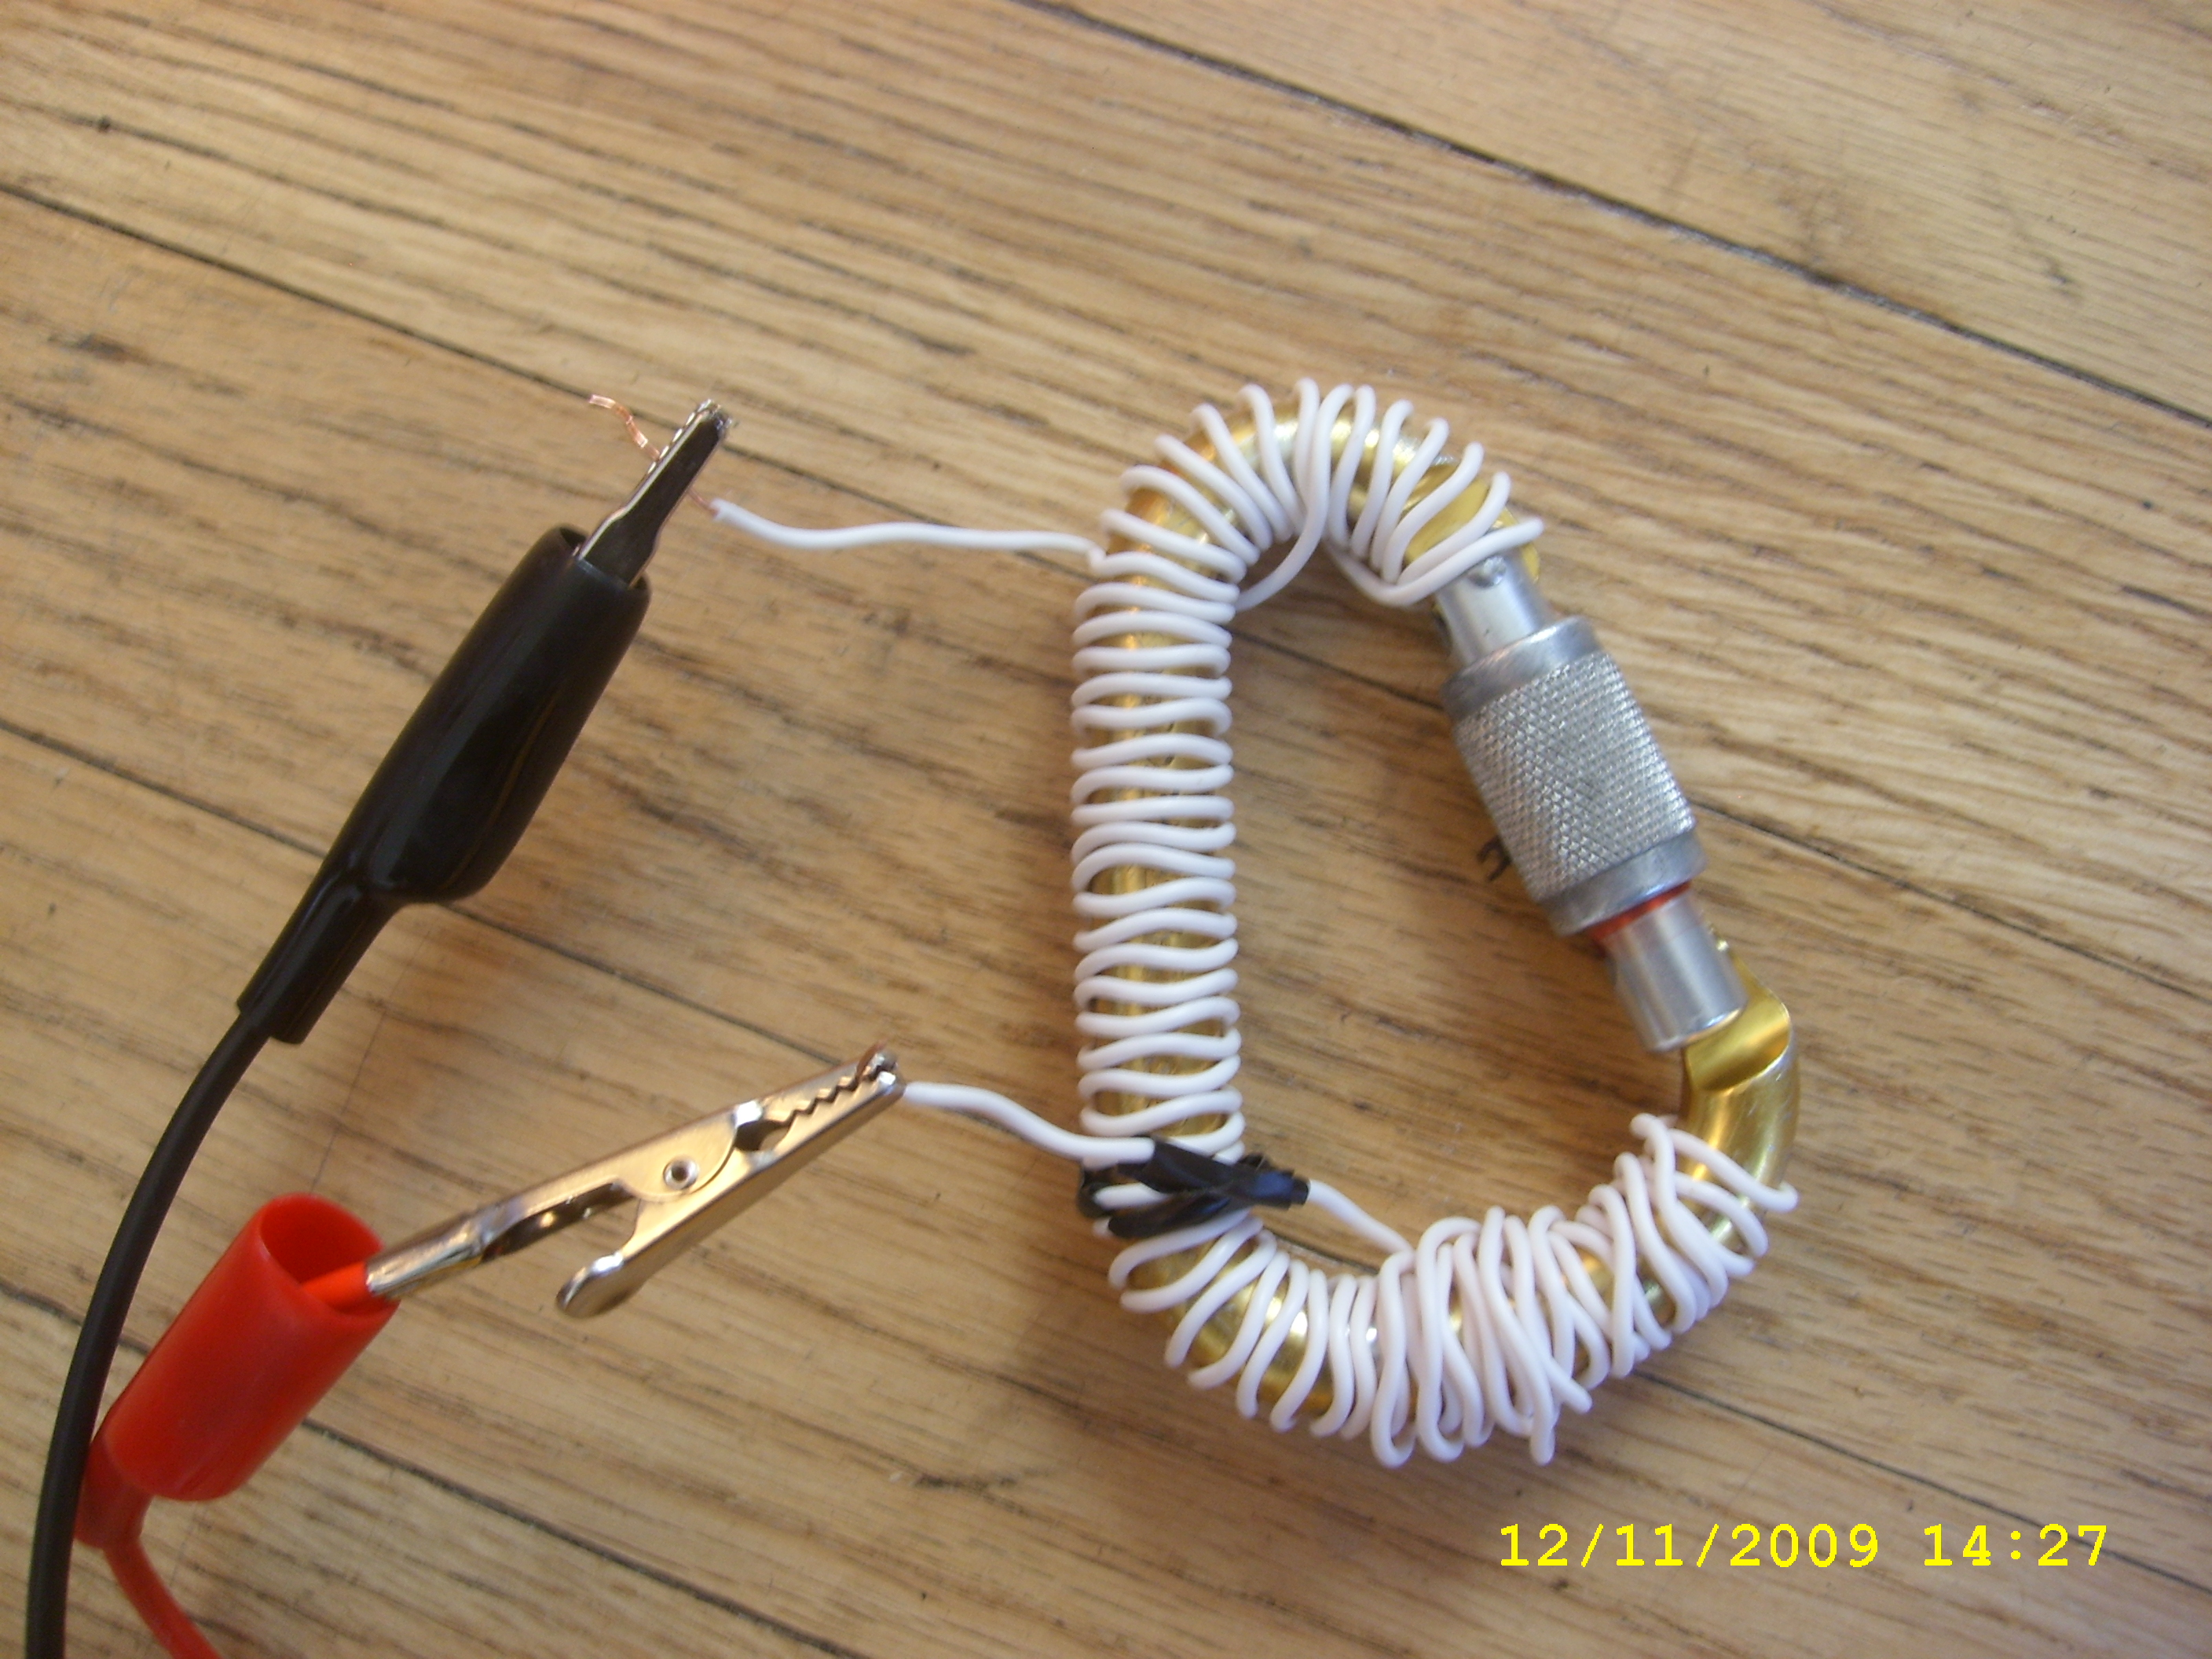 $2 Carabiner AC amp sensor (aka current transducer, CT sensor, amp meter, split core clamp-on ammeter)